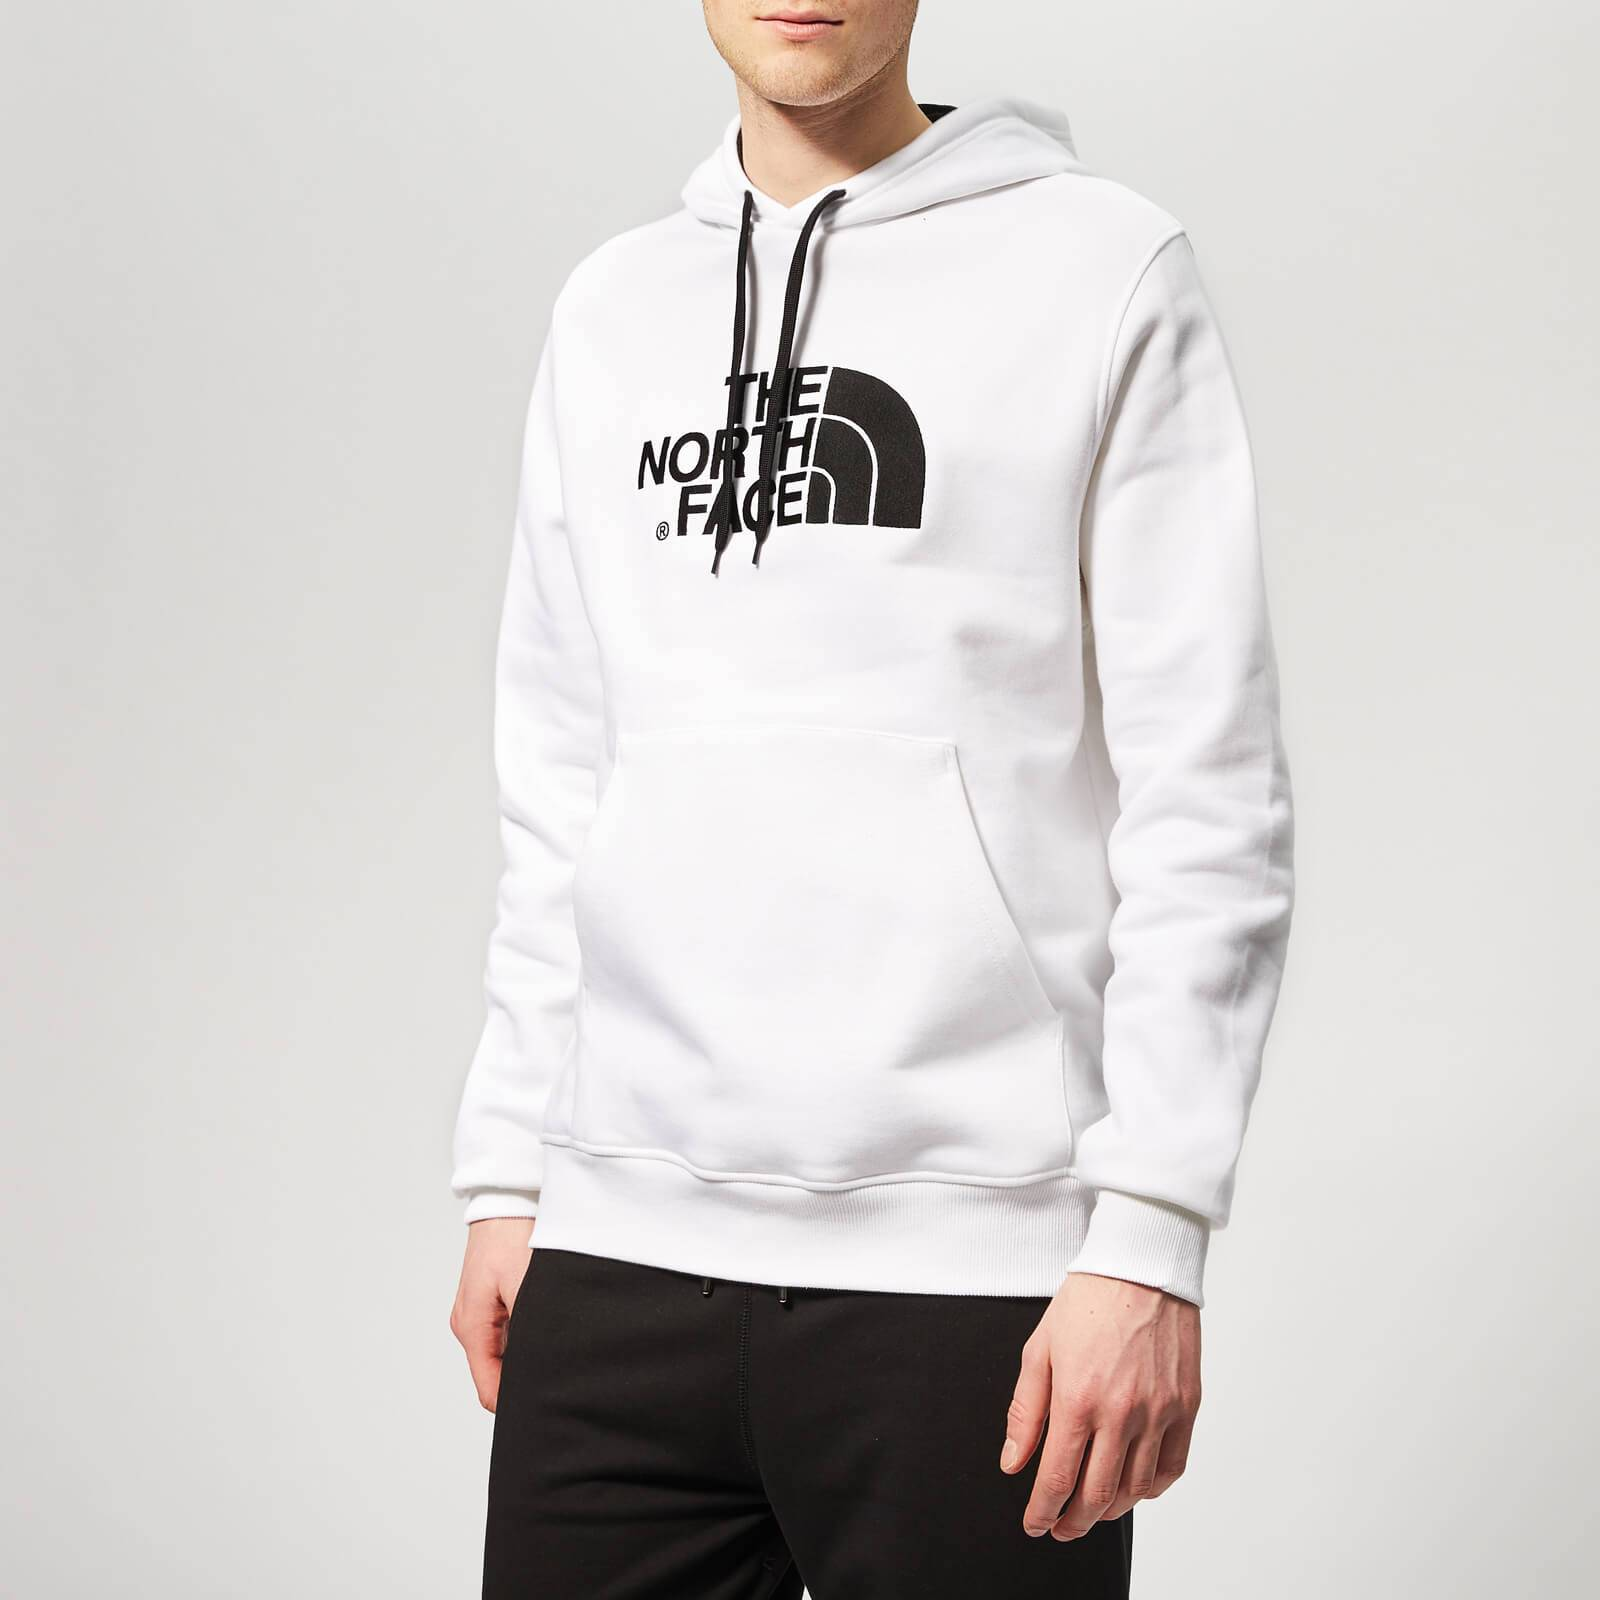 ee8df62f0 north face | Find, compare and buy at the best price - Market Search UK